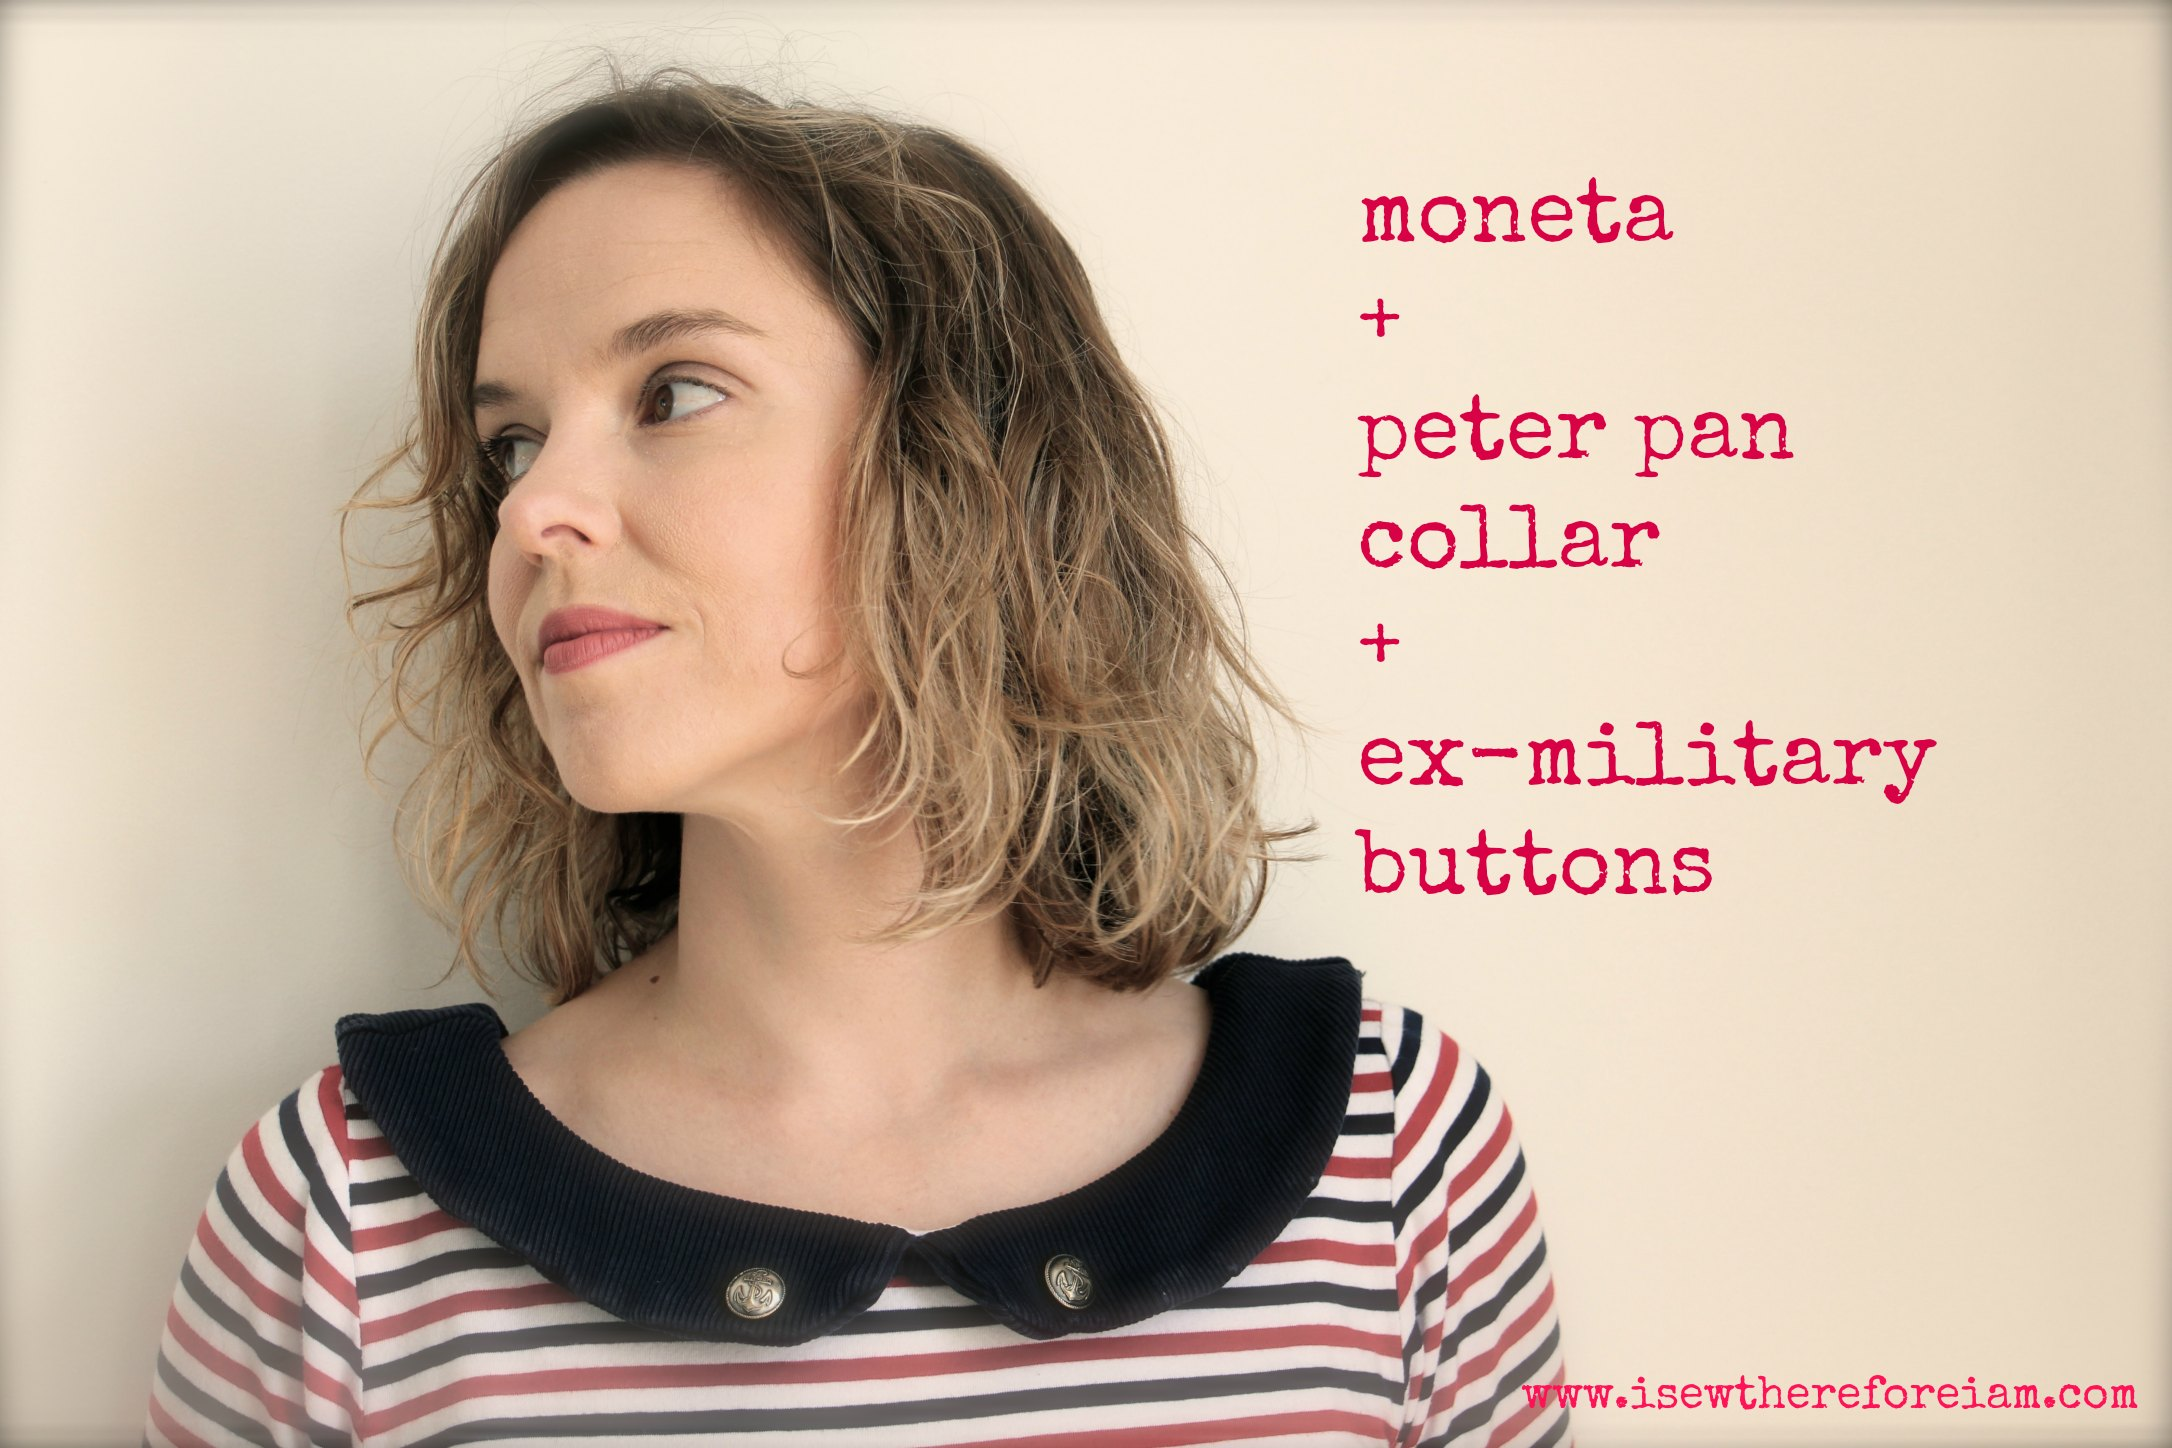 Colette Moneta with Peter Pan collar